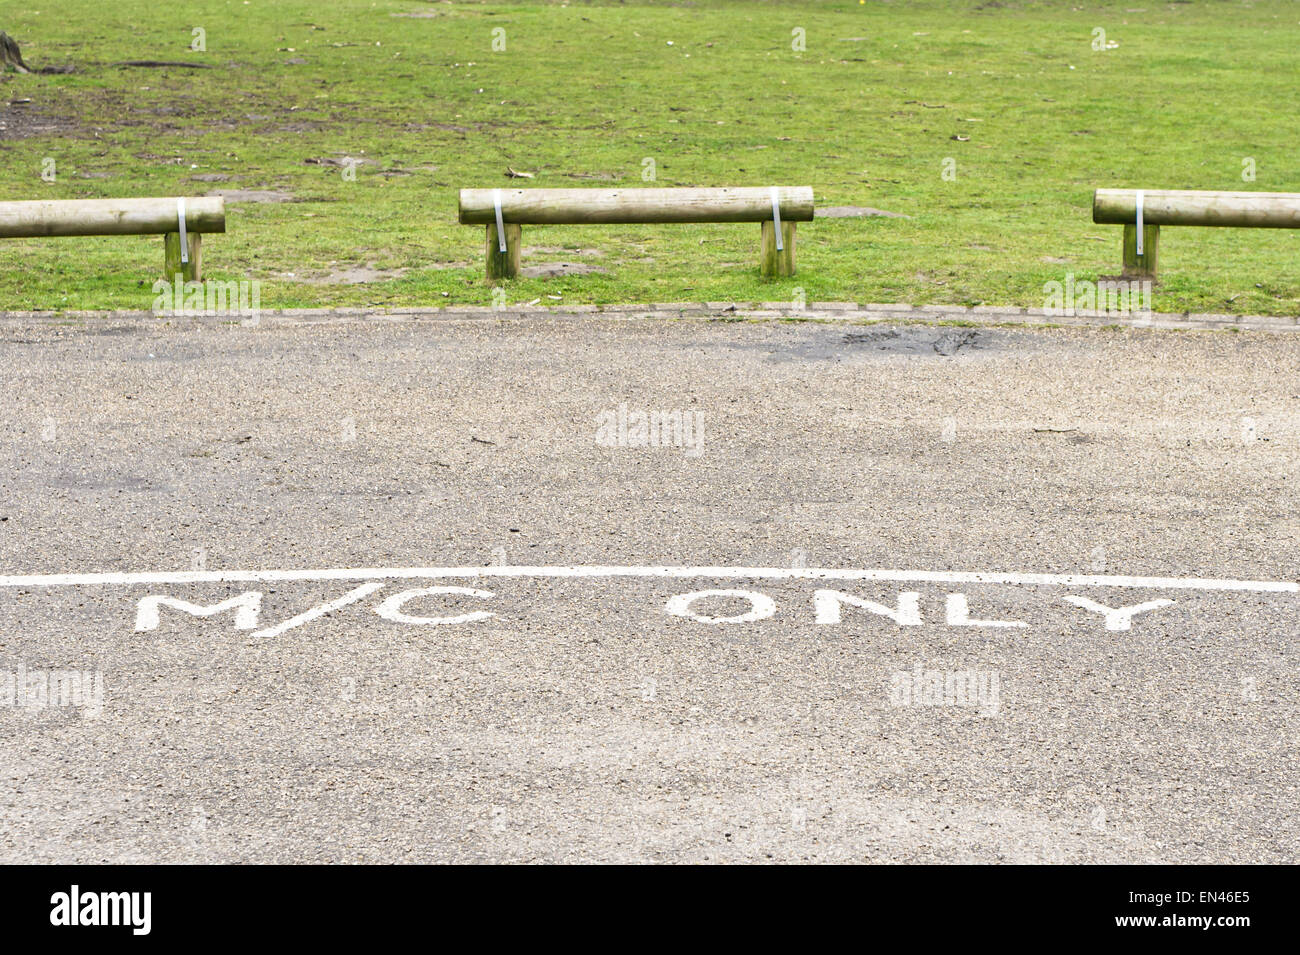 Designated parking area for motorcycles in a public park in the UK Stock Photo